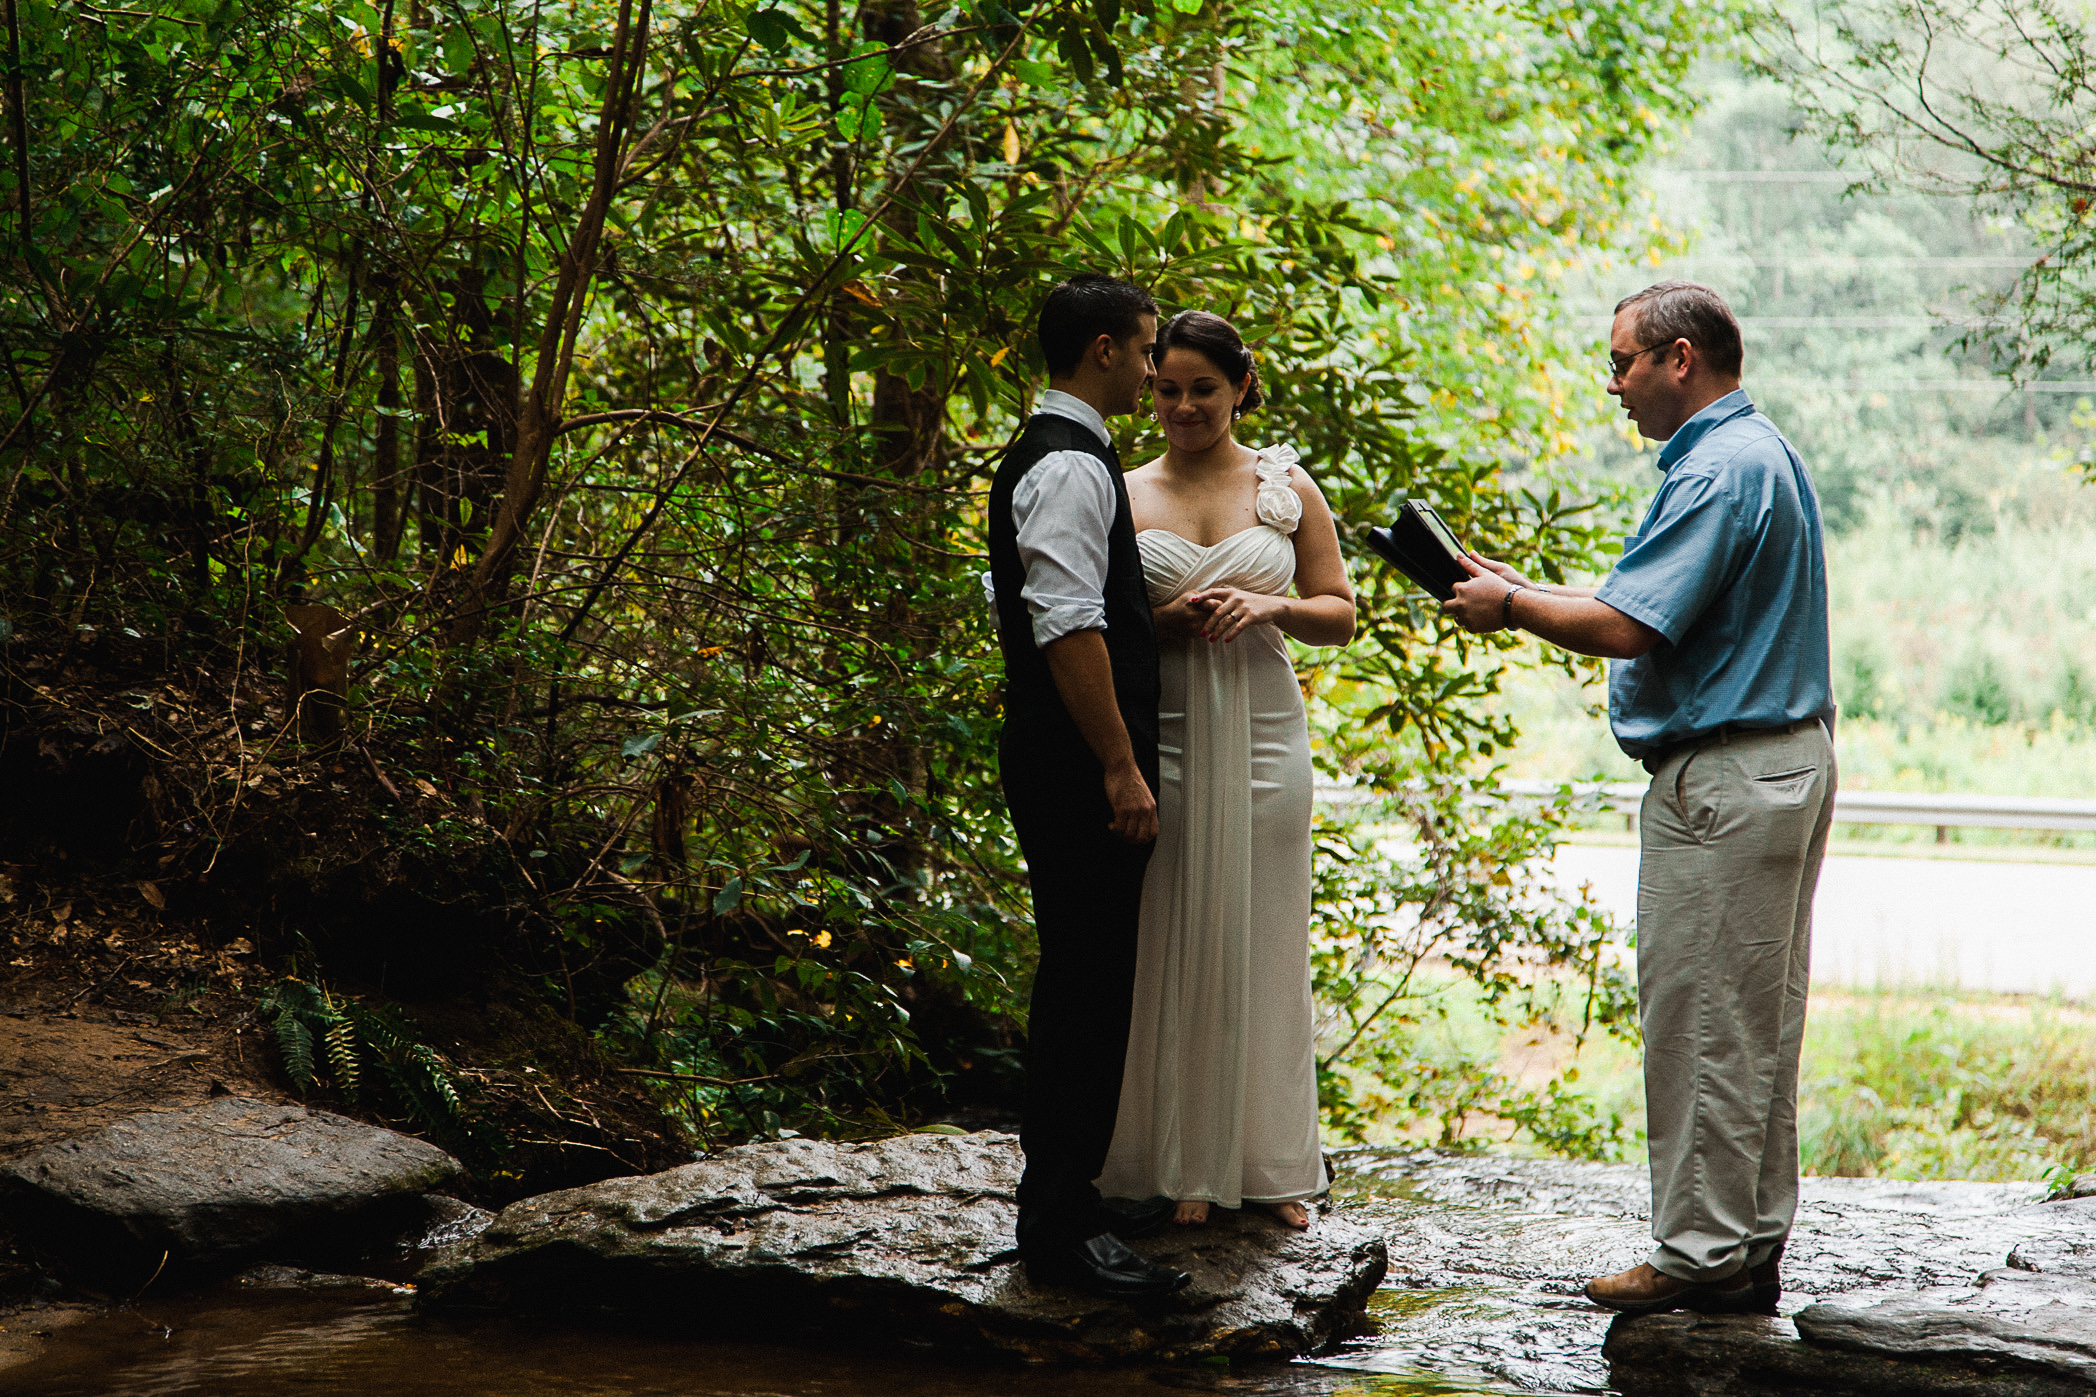 wildcat_falls_wedding (5 of 36).jpg